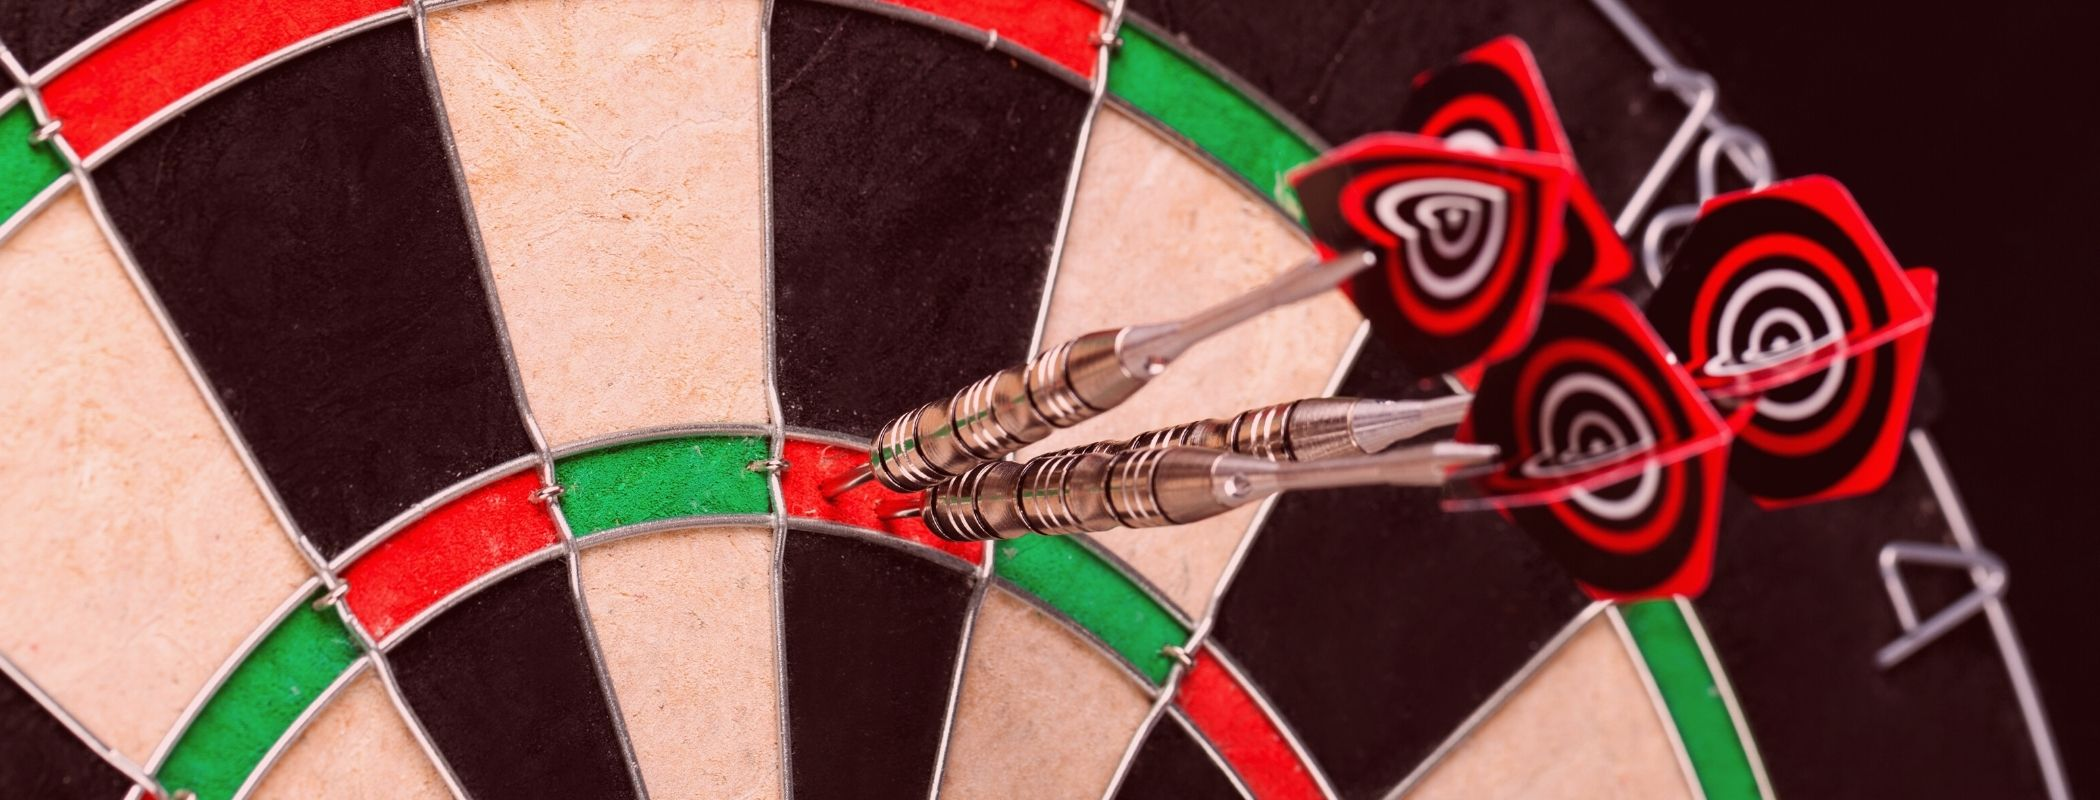 How to WIn Darts Tips From Experts